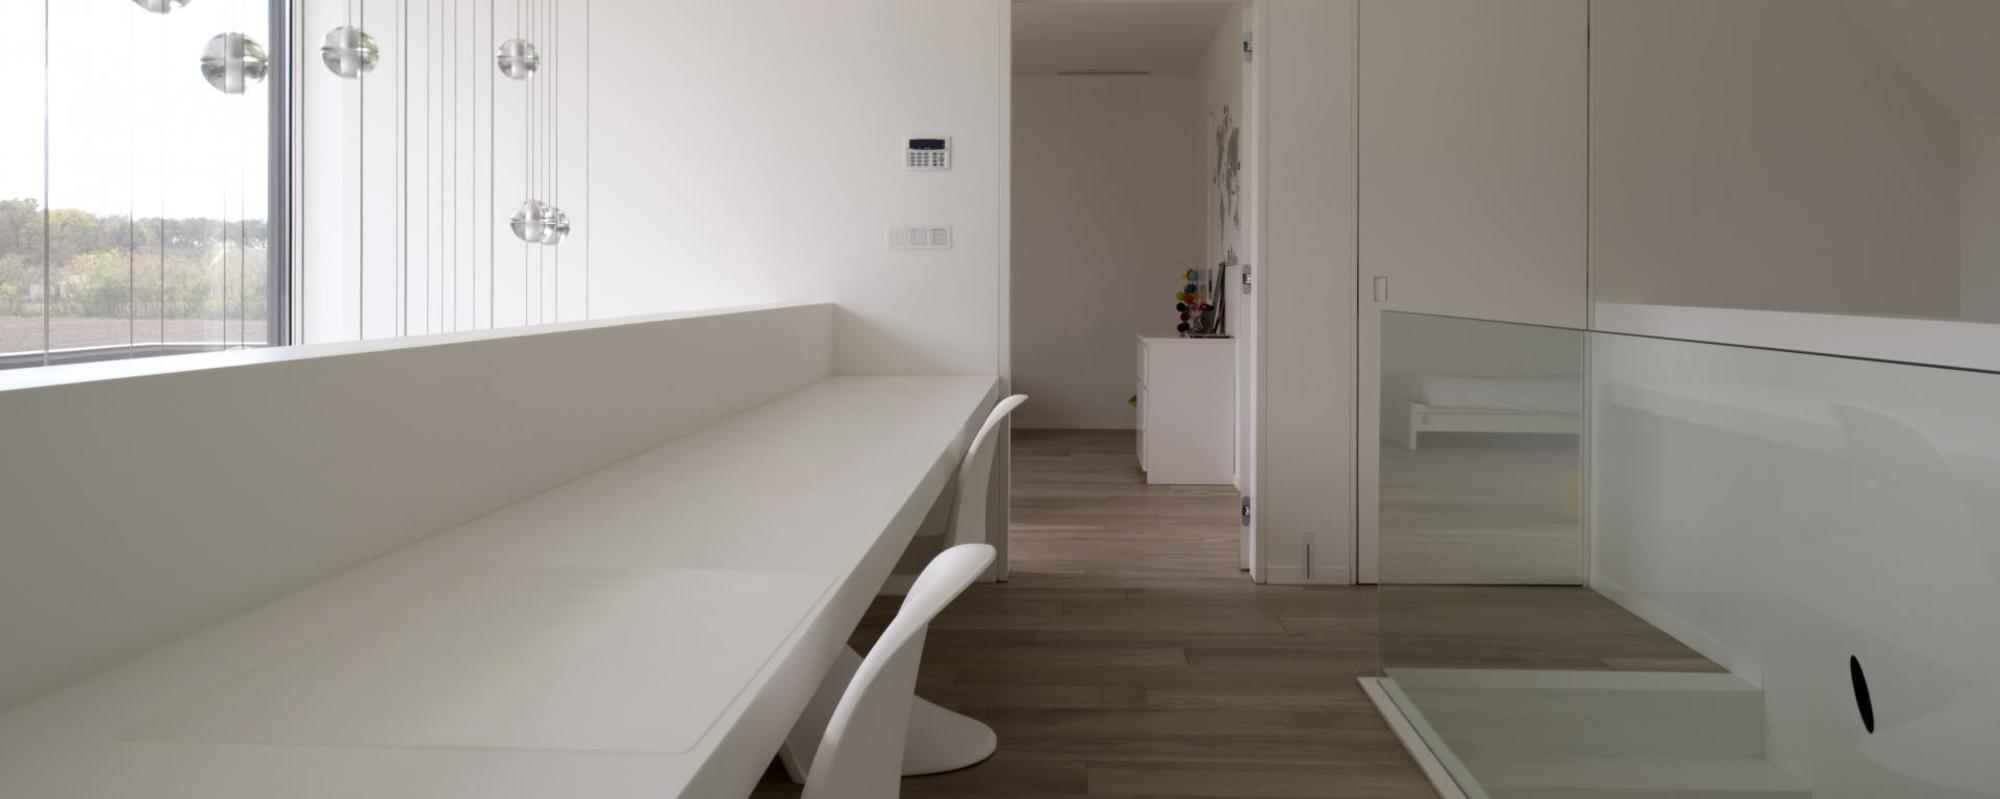 privéwoning Simoni architects & Balo design boutique CASA DOLCE CASA Wooden Tile almond 20x120